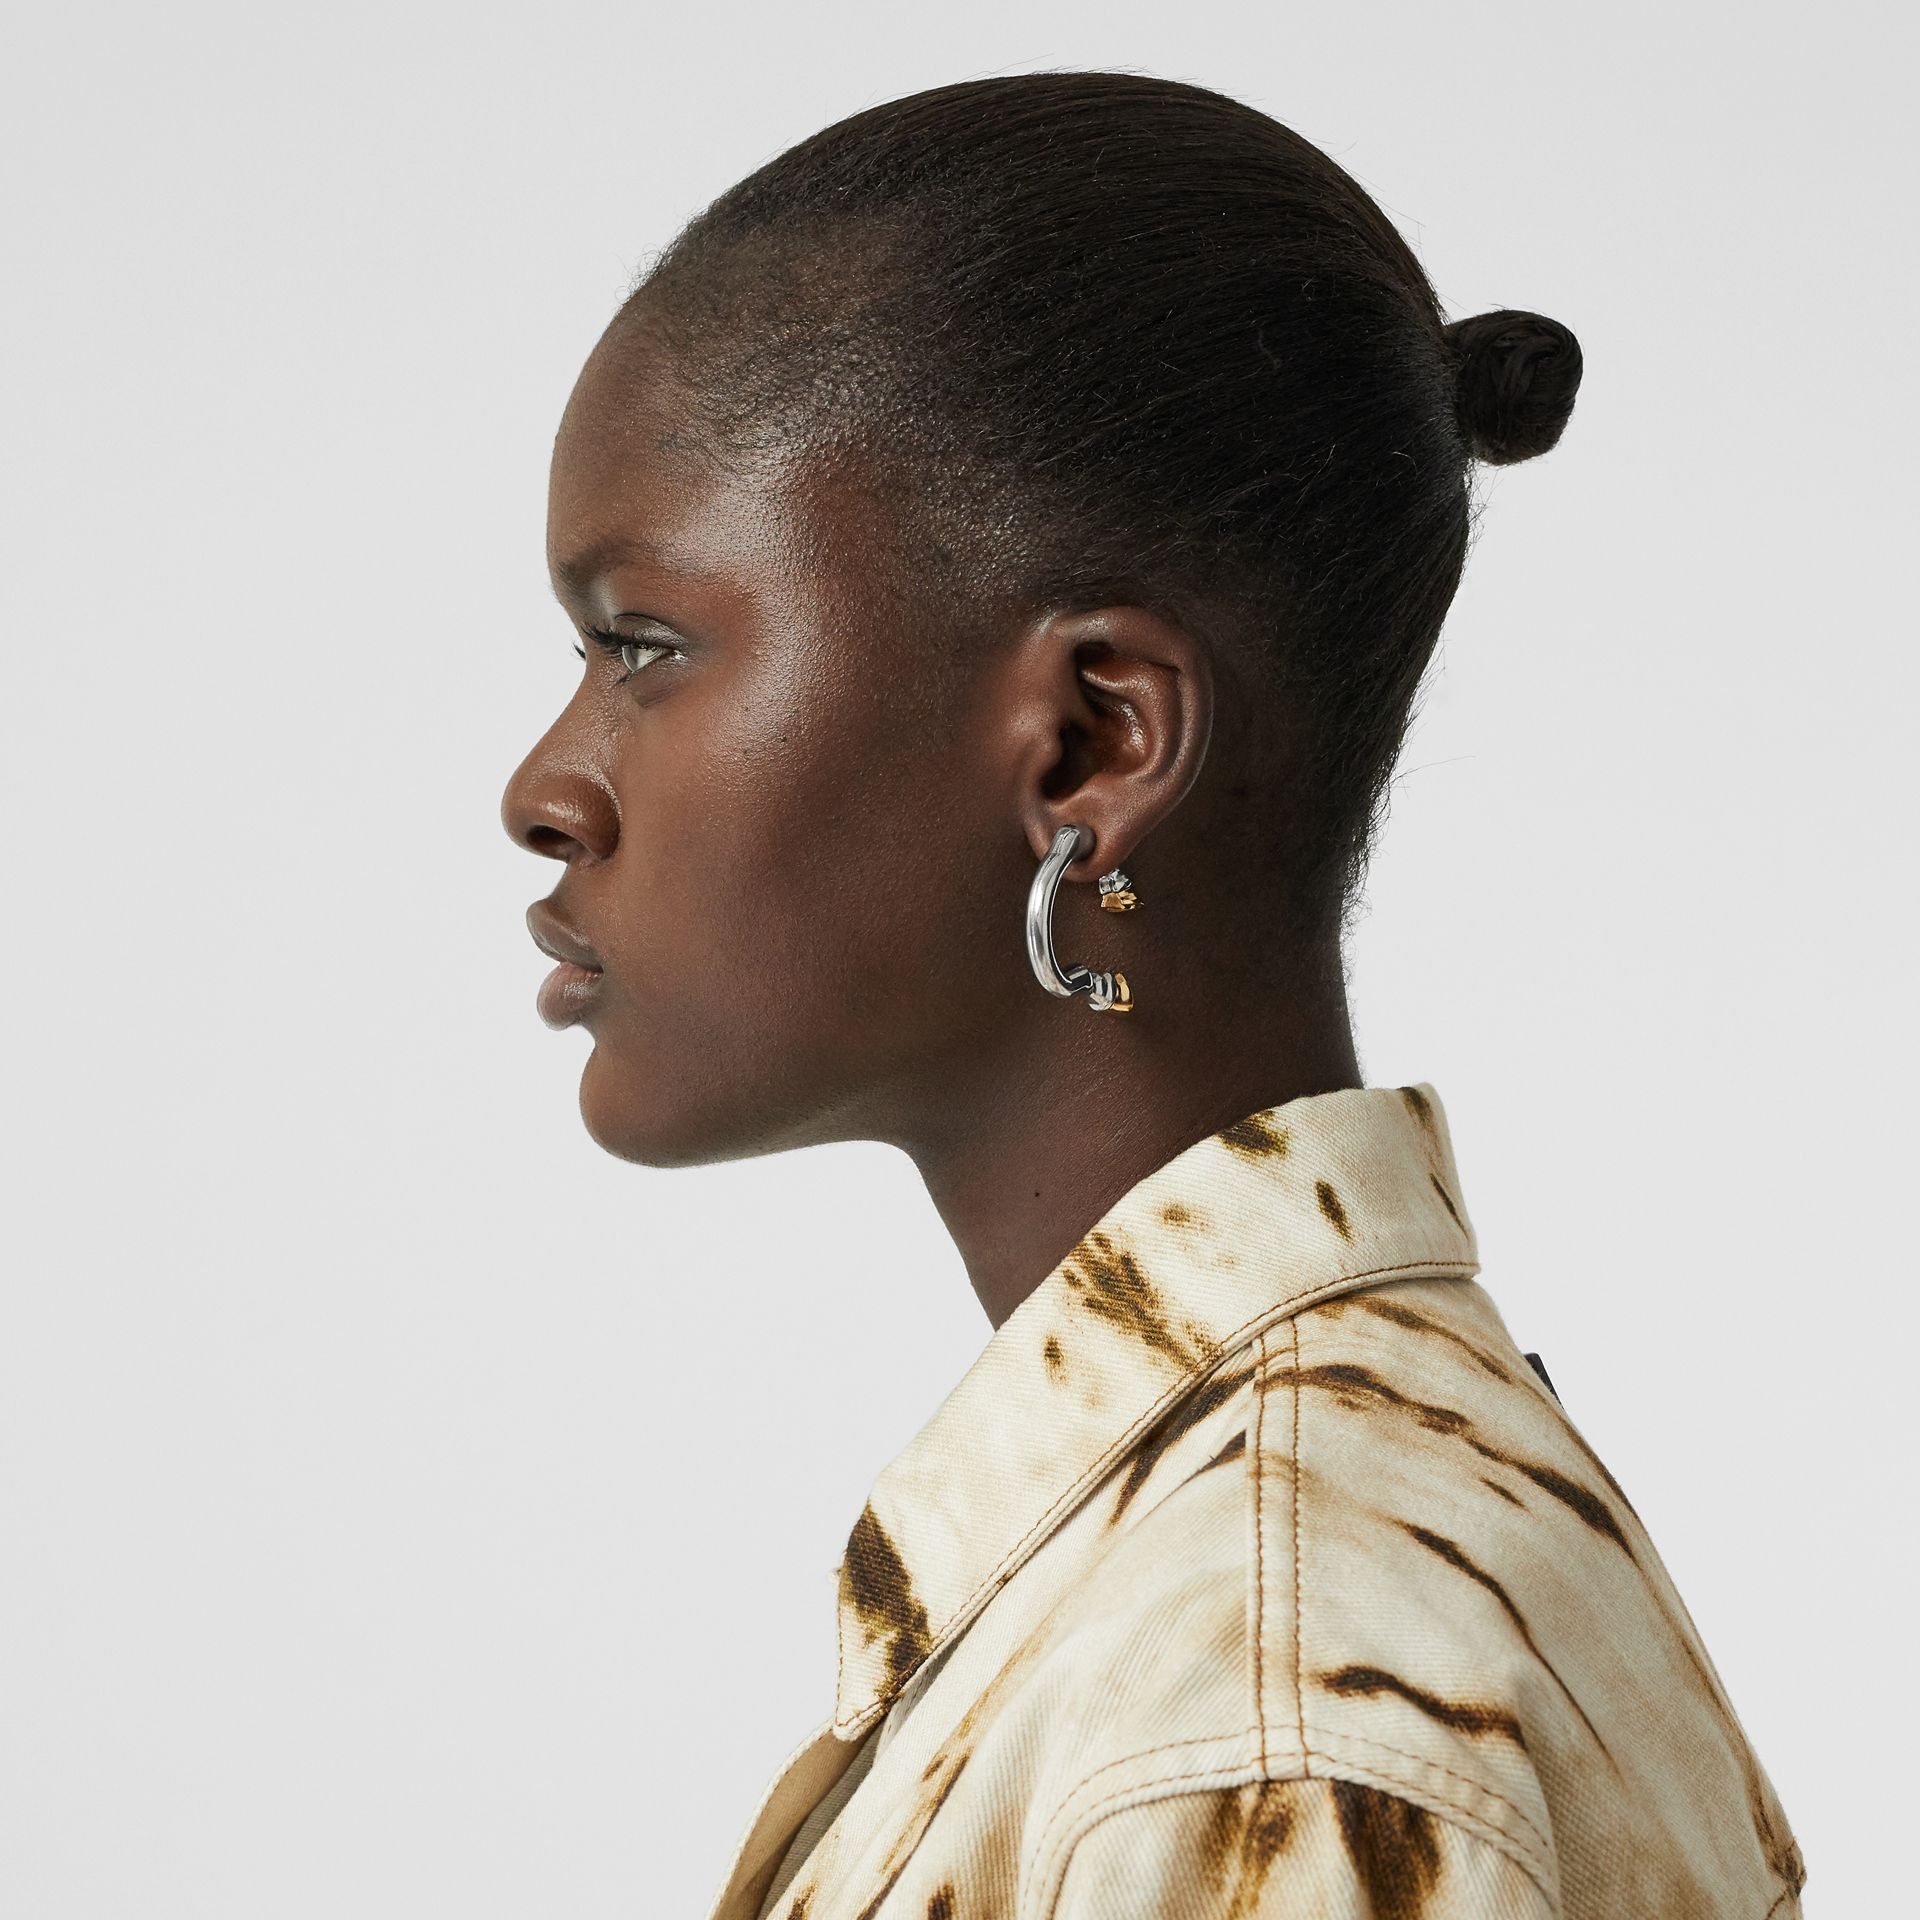 Palladium and Gold-plated Hoof Open-hoop Earrings in Palladio/gold - Women | Burberry Australia - gallery image 2